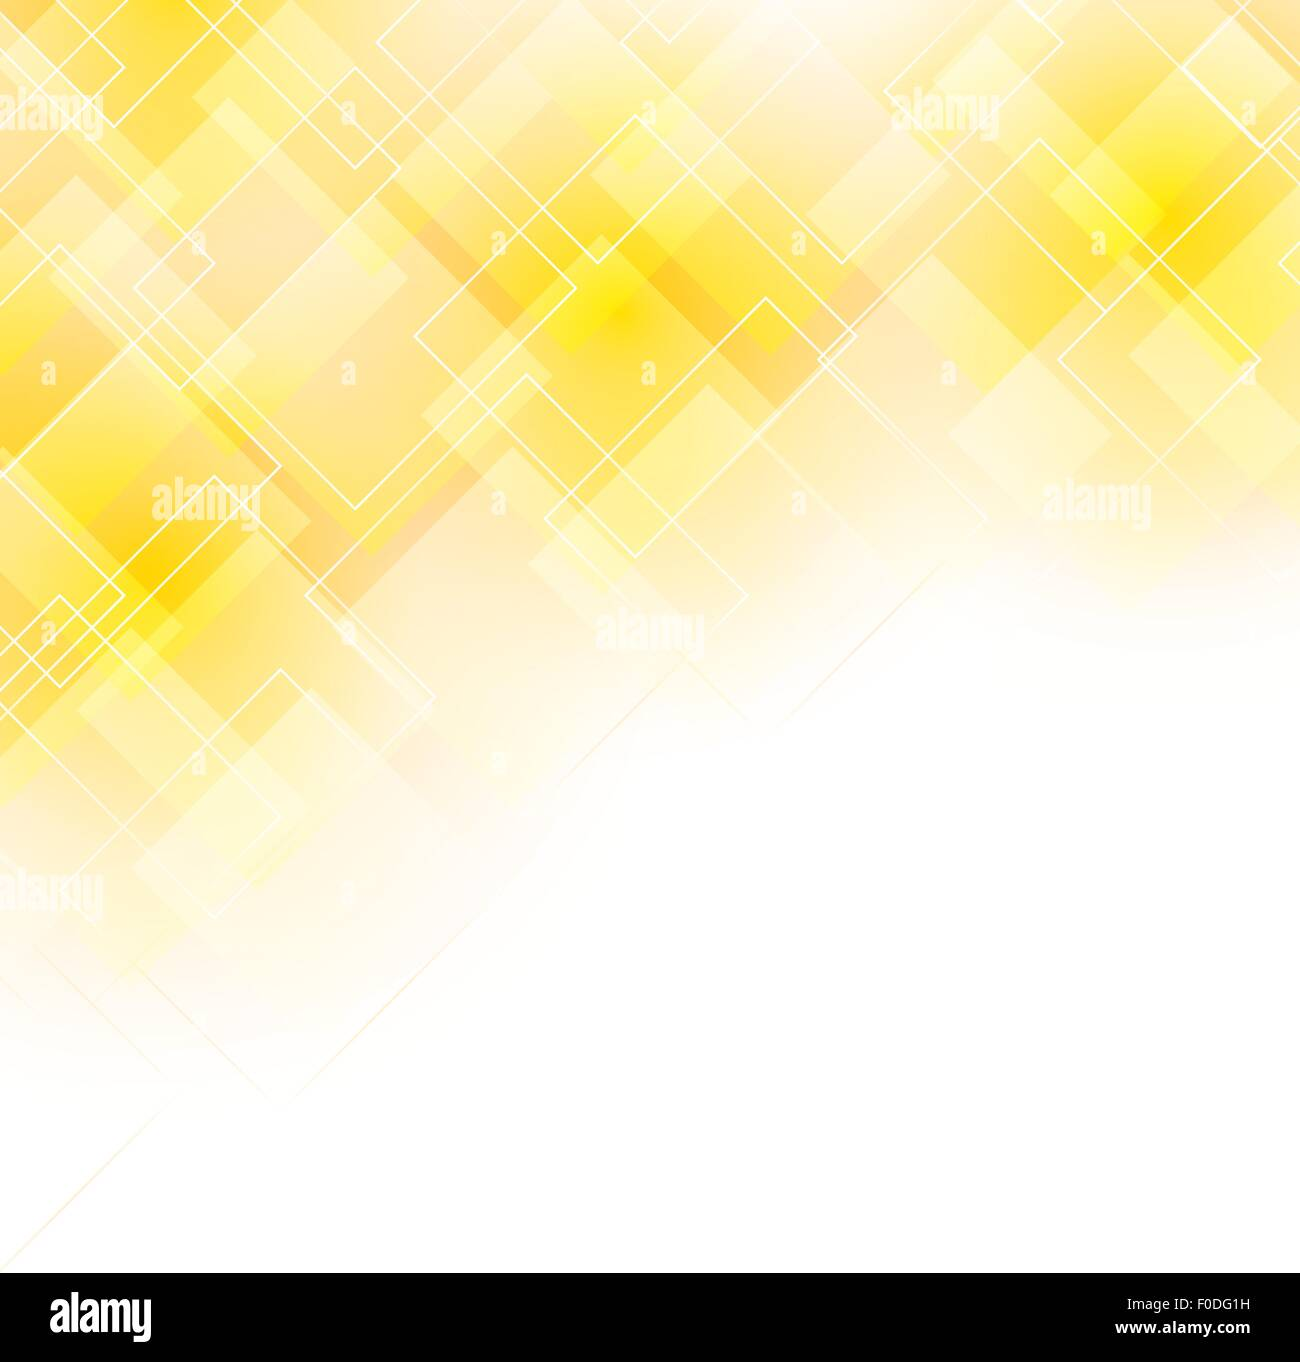 Yellow Transaparent Background With Line Wiring Diagrams Marker Pulse Generator Circuit Diagram Tradeoficcom Light Transparent Shapes Stock Vector Art Rh Alamy Com Stripes